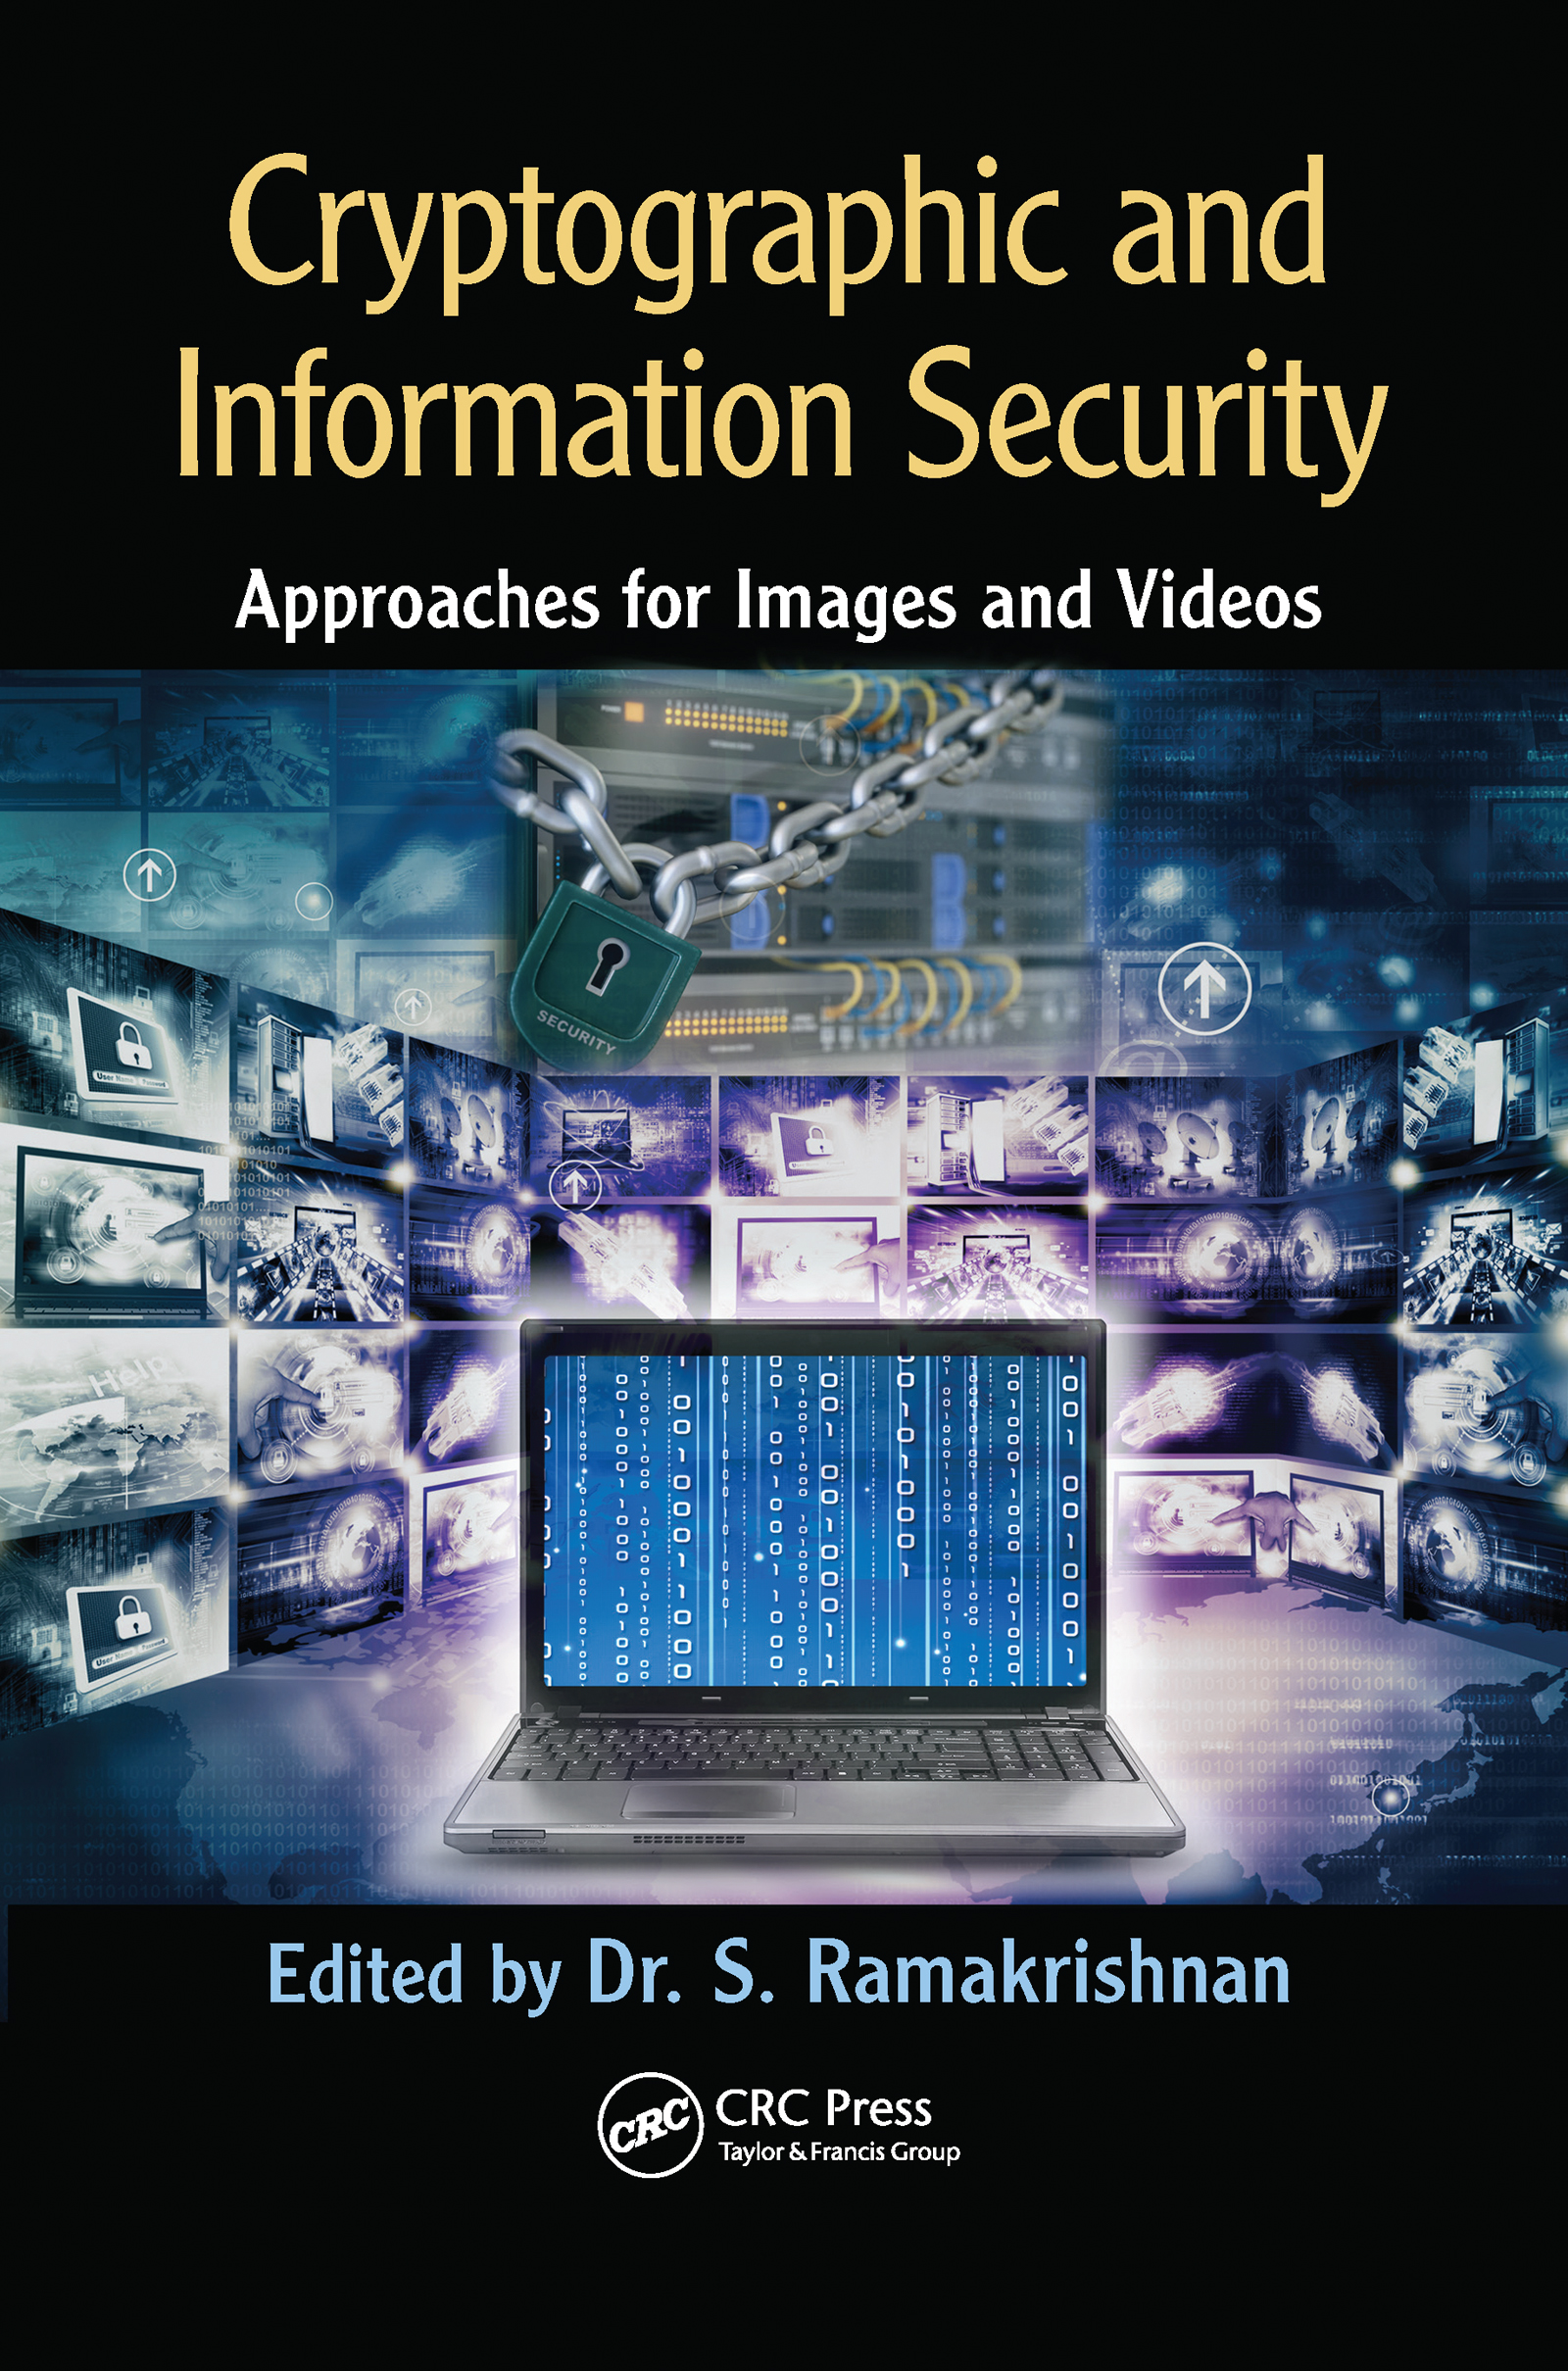 Cryptographic and Information Security Approaches for Images and Videos